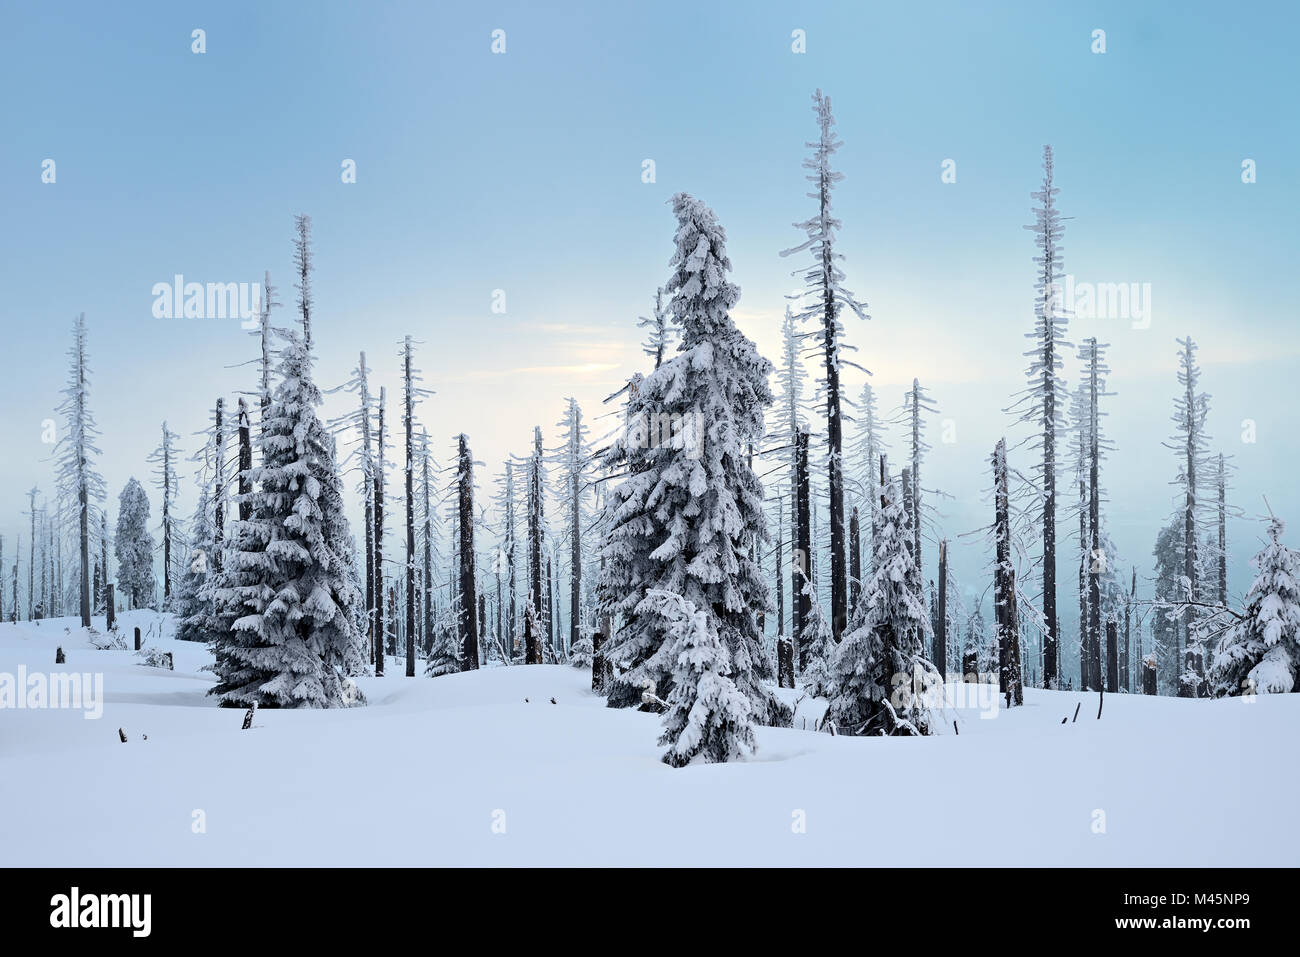 Mountain Großer Rachel in winter,spruces covered with snow and spruces dead by bark beetle infestation - Stock Image